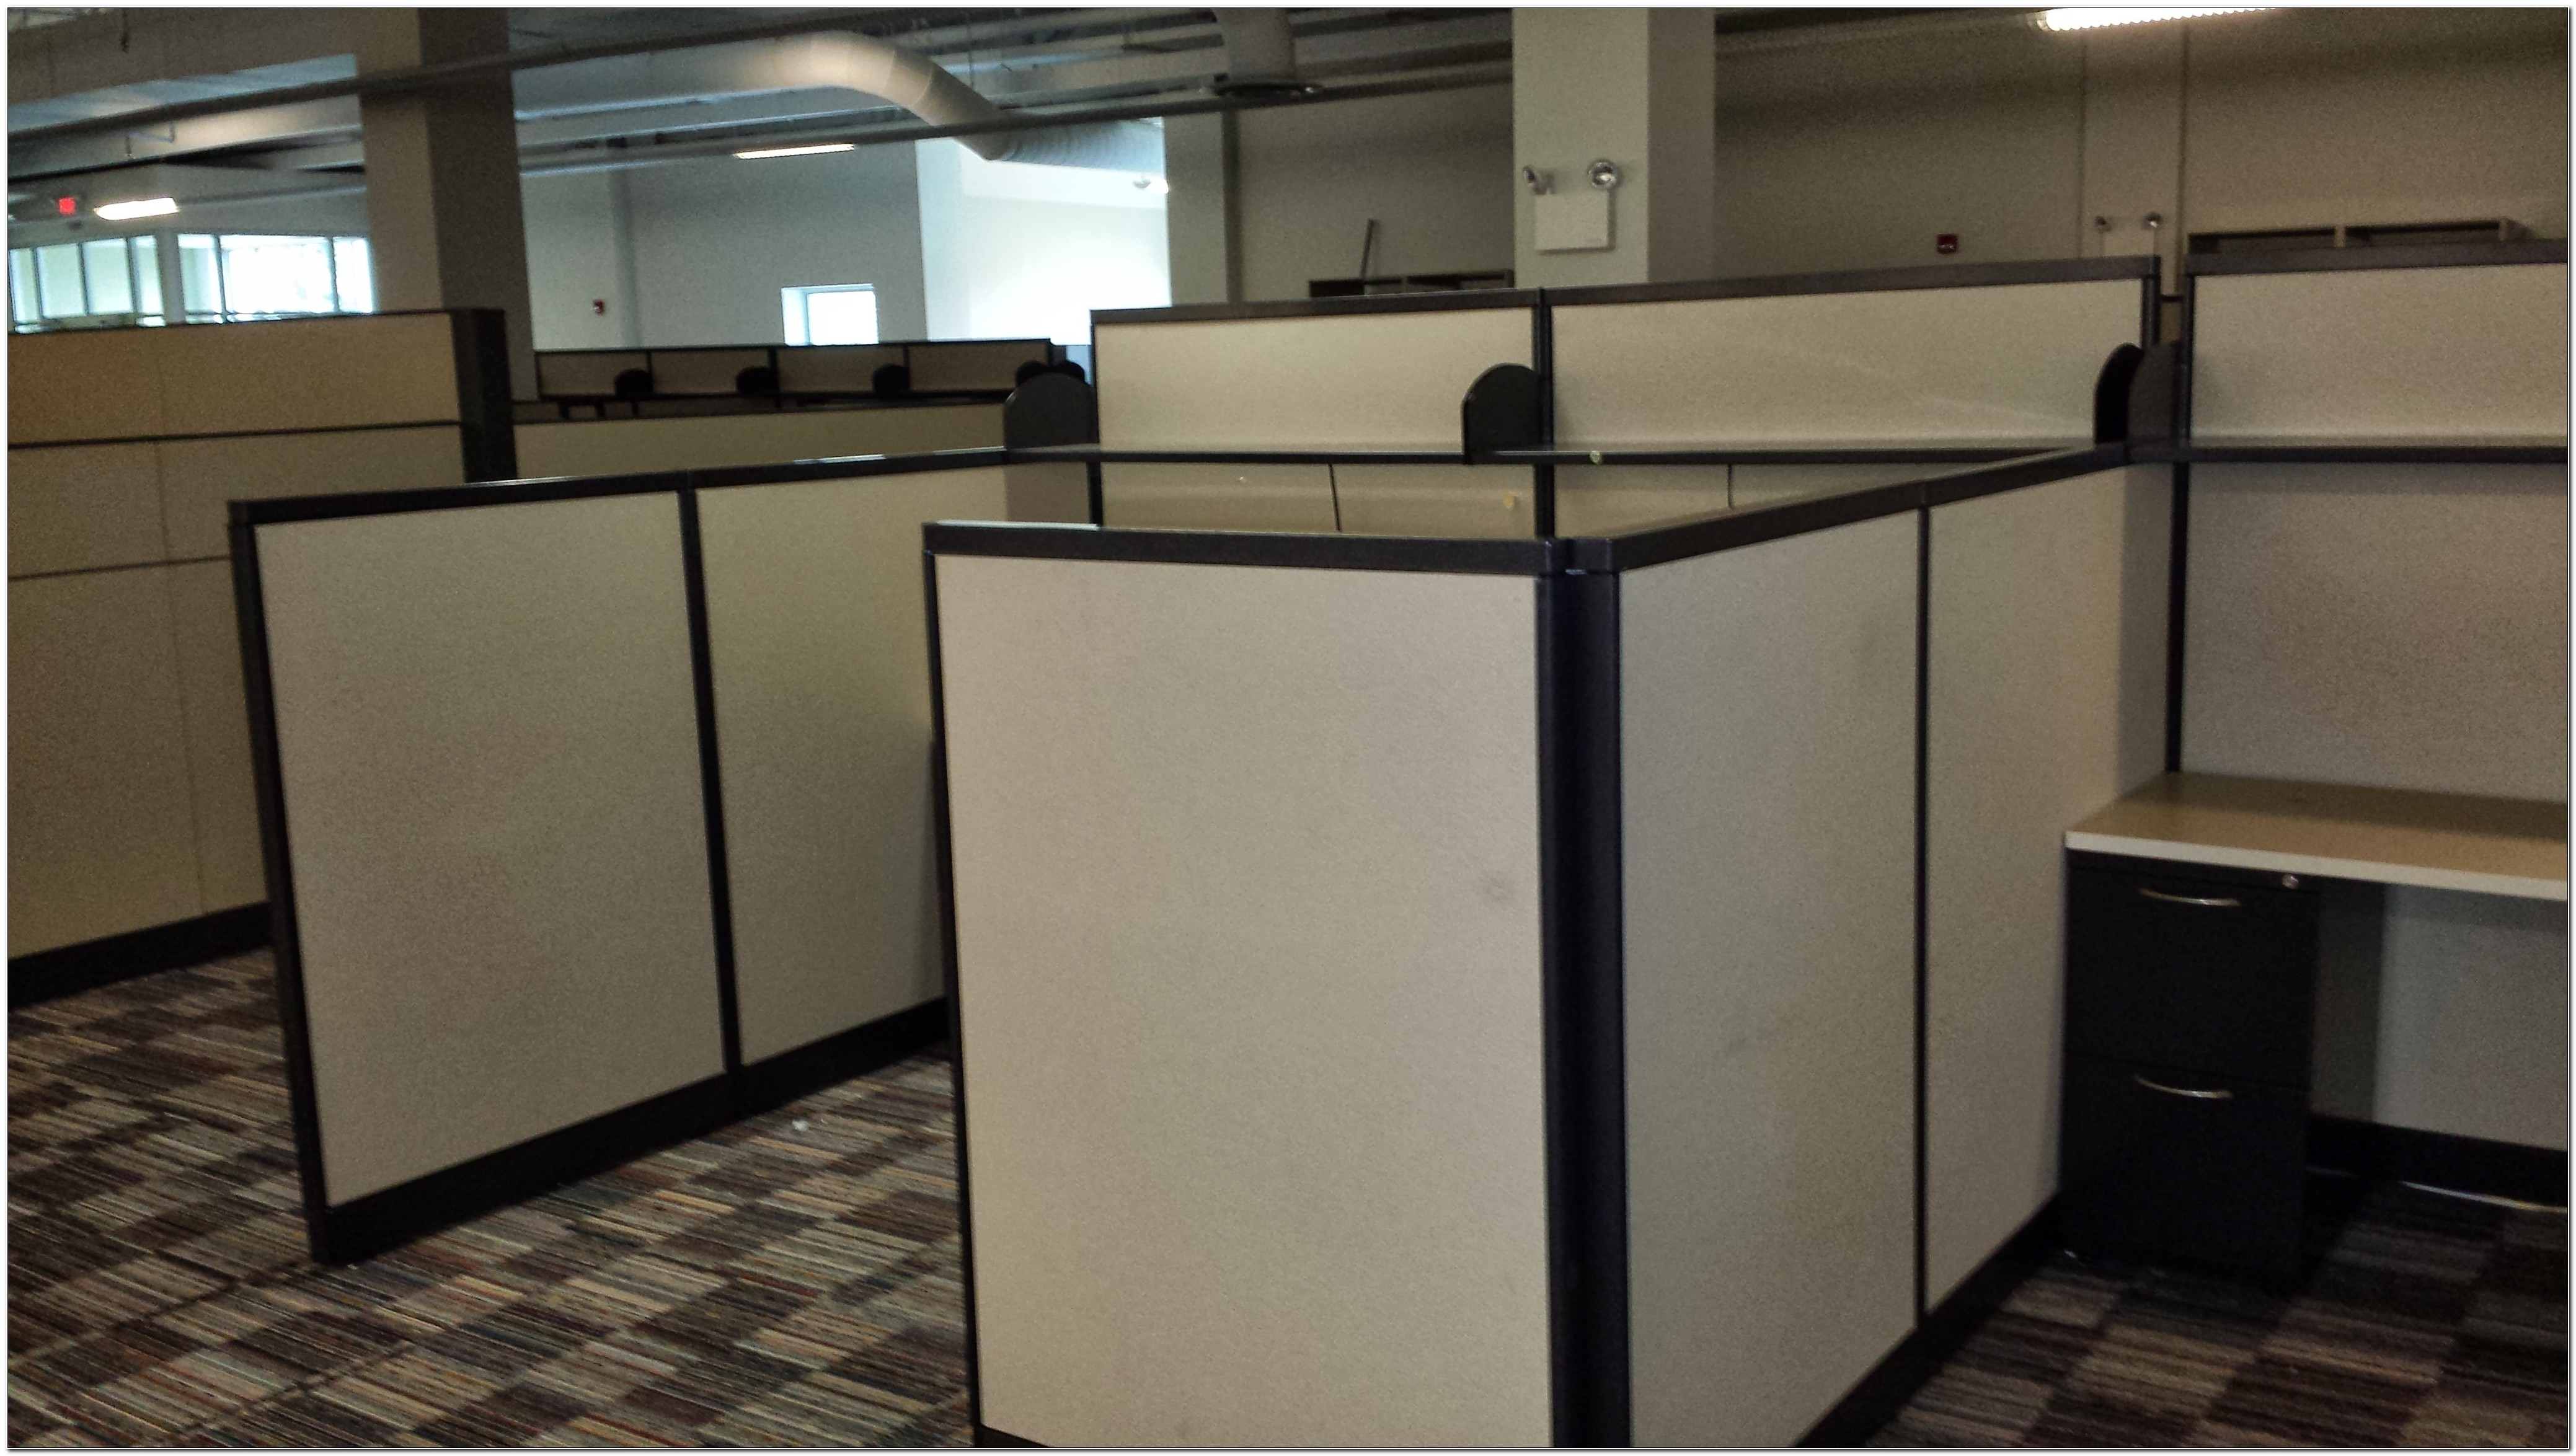 Used File Cabinets Chicago Craigslist - Cabinet : Home ...